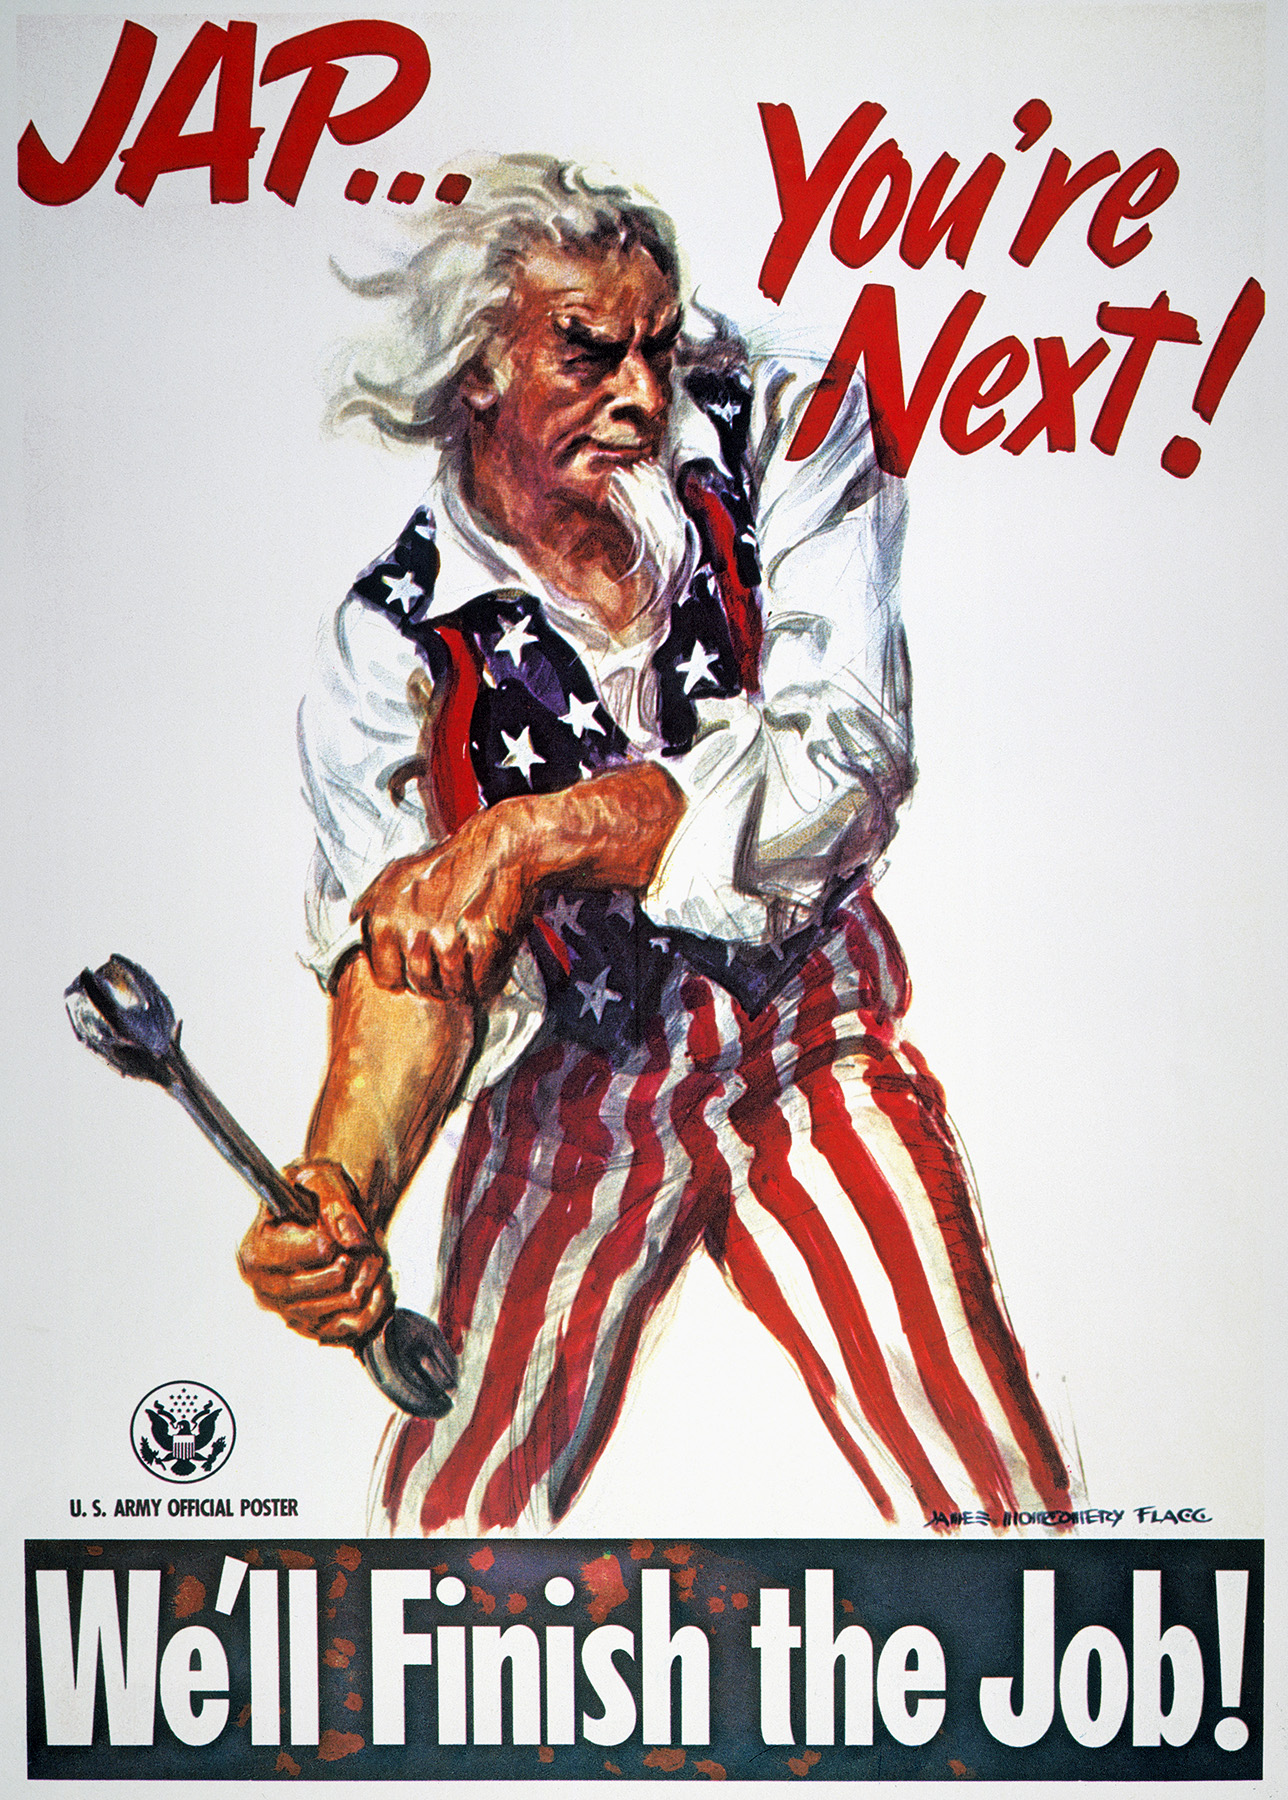 Jap…You're Next! We'll Finish the Job, by James Montgomery Flagg, 1944.